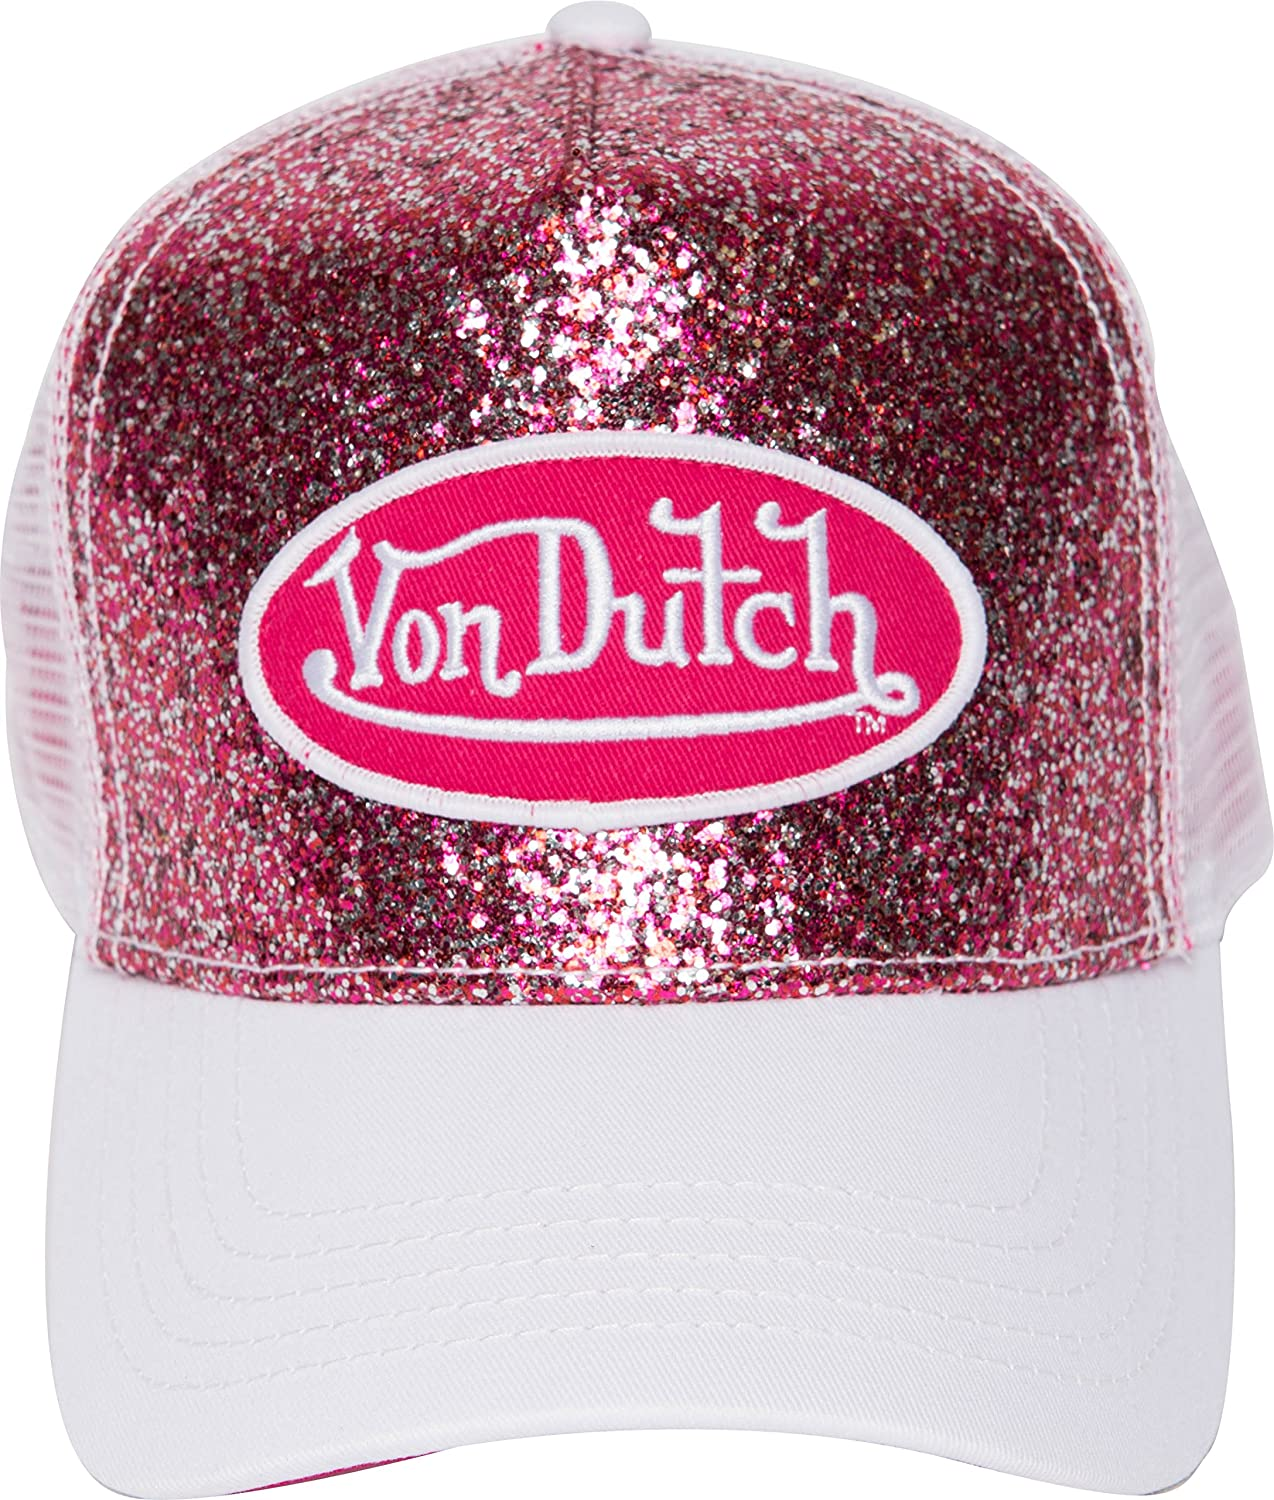 e7f93dcaa68 Von Dutch Trucker Sparkle Cap with Logo Patch (Blue VDHT231) at Amazon  Women s Clothing store